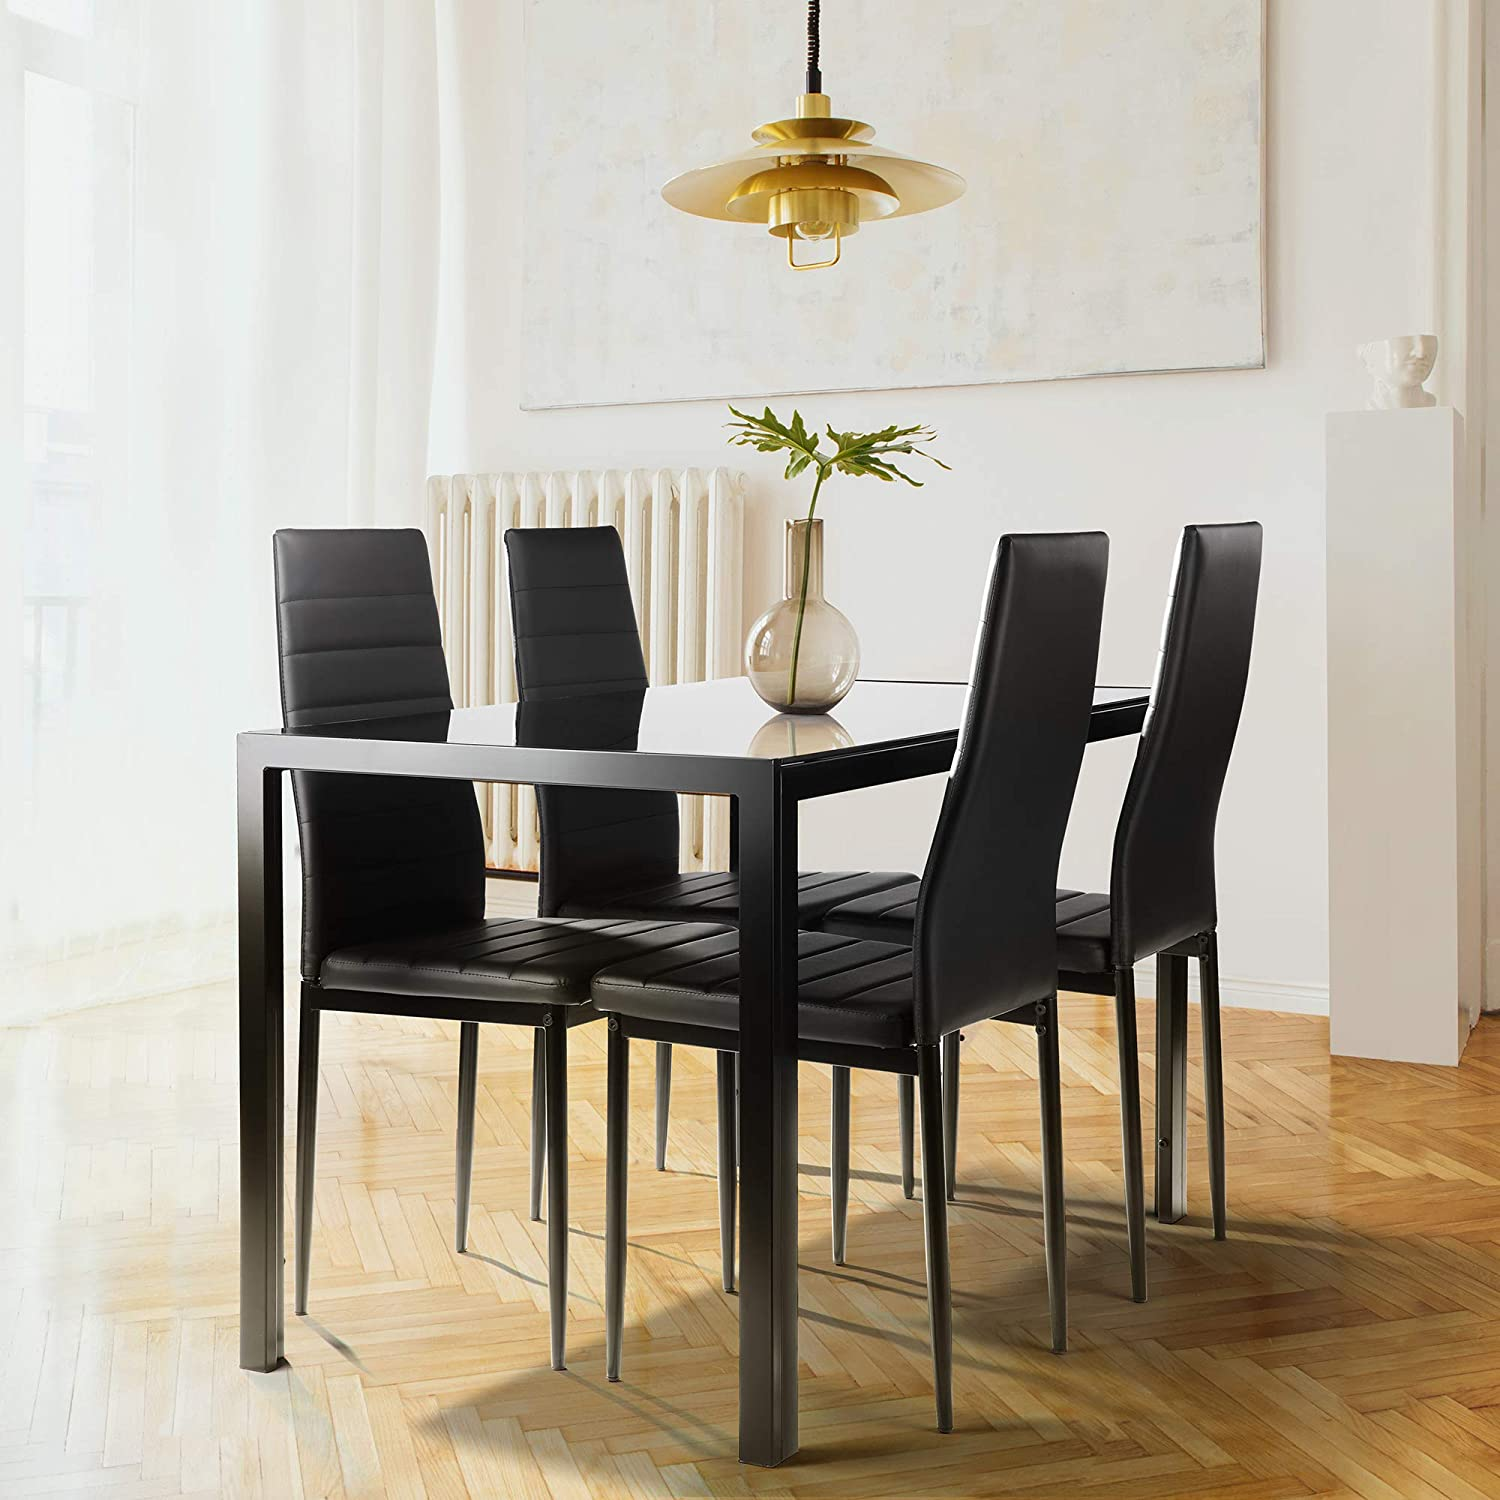 N Kitchen Room Tempered Glass Dining Table With 4 Pu Leather Chairs For Small Spaces Home Furniture Rectangular Black A 5 Pieces Dining Table Set Table Chair Sets Kitchen Dining